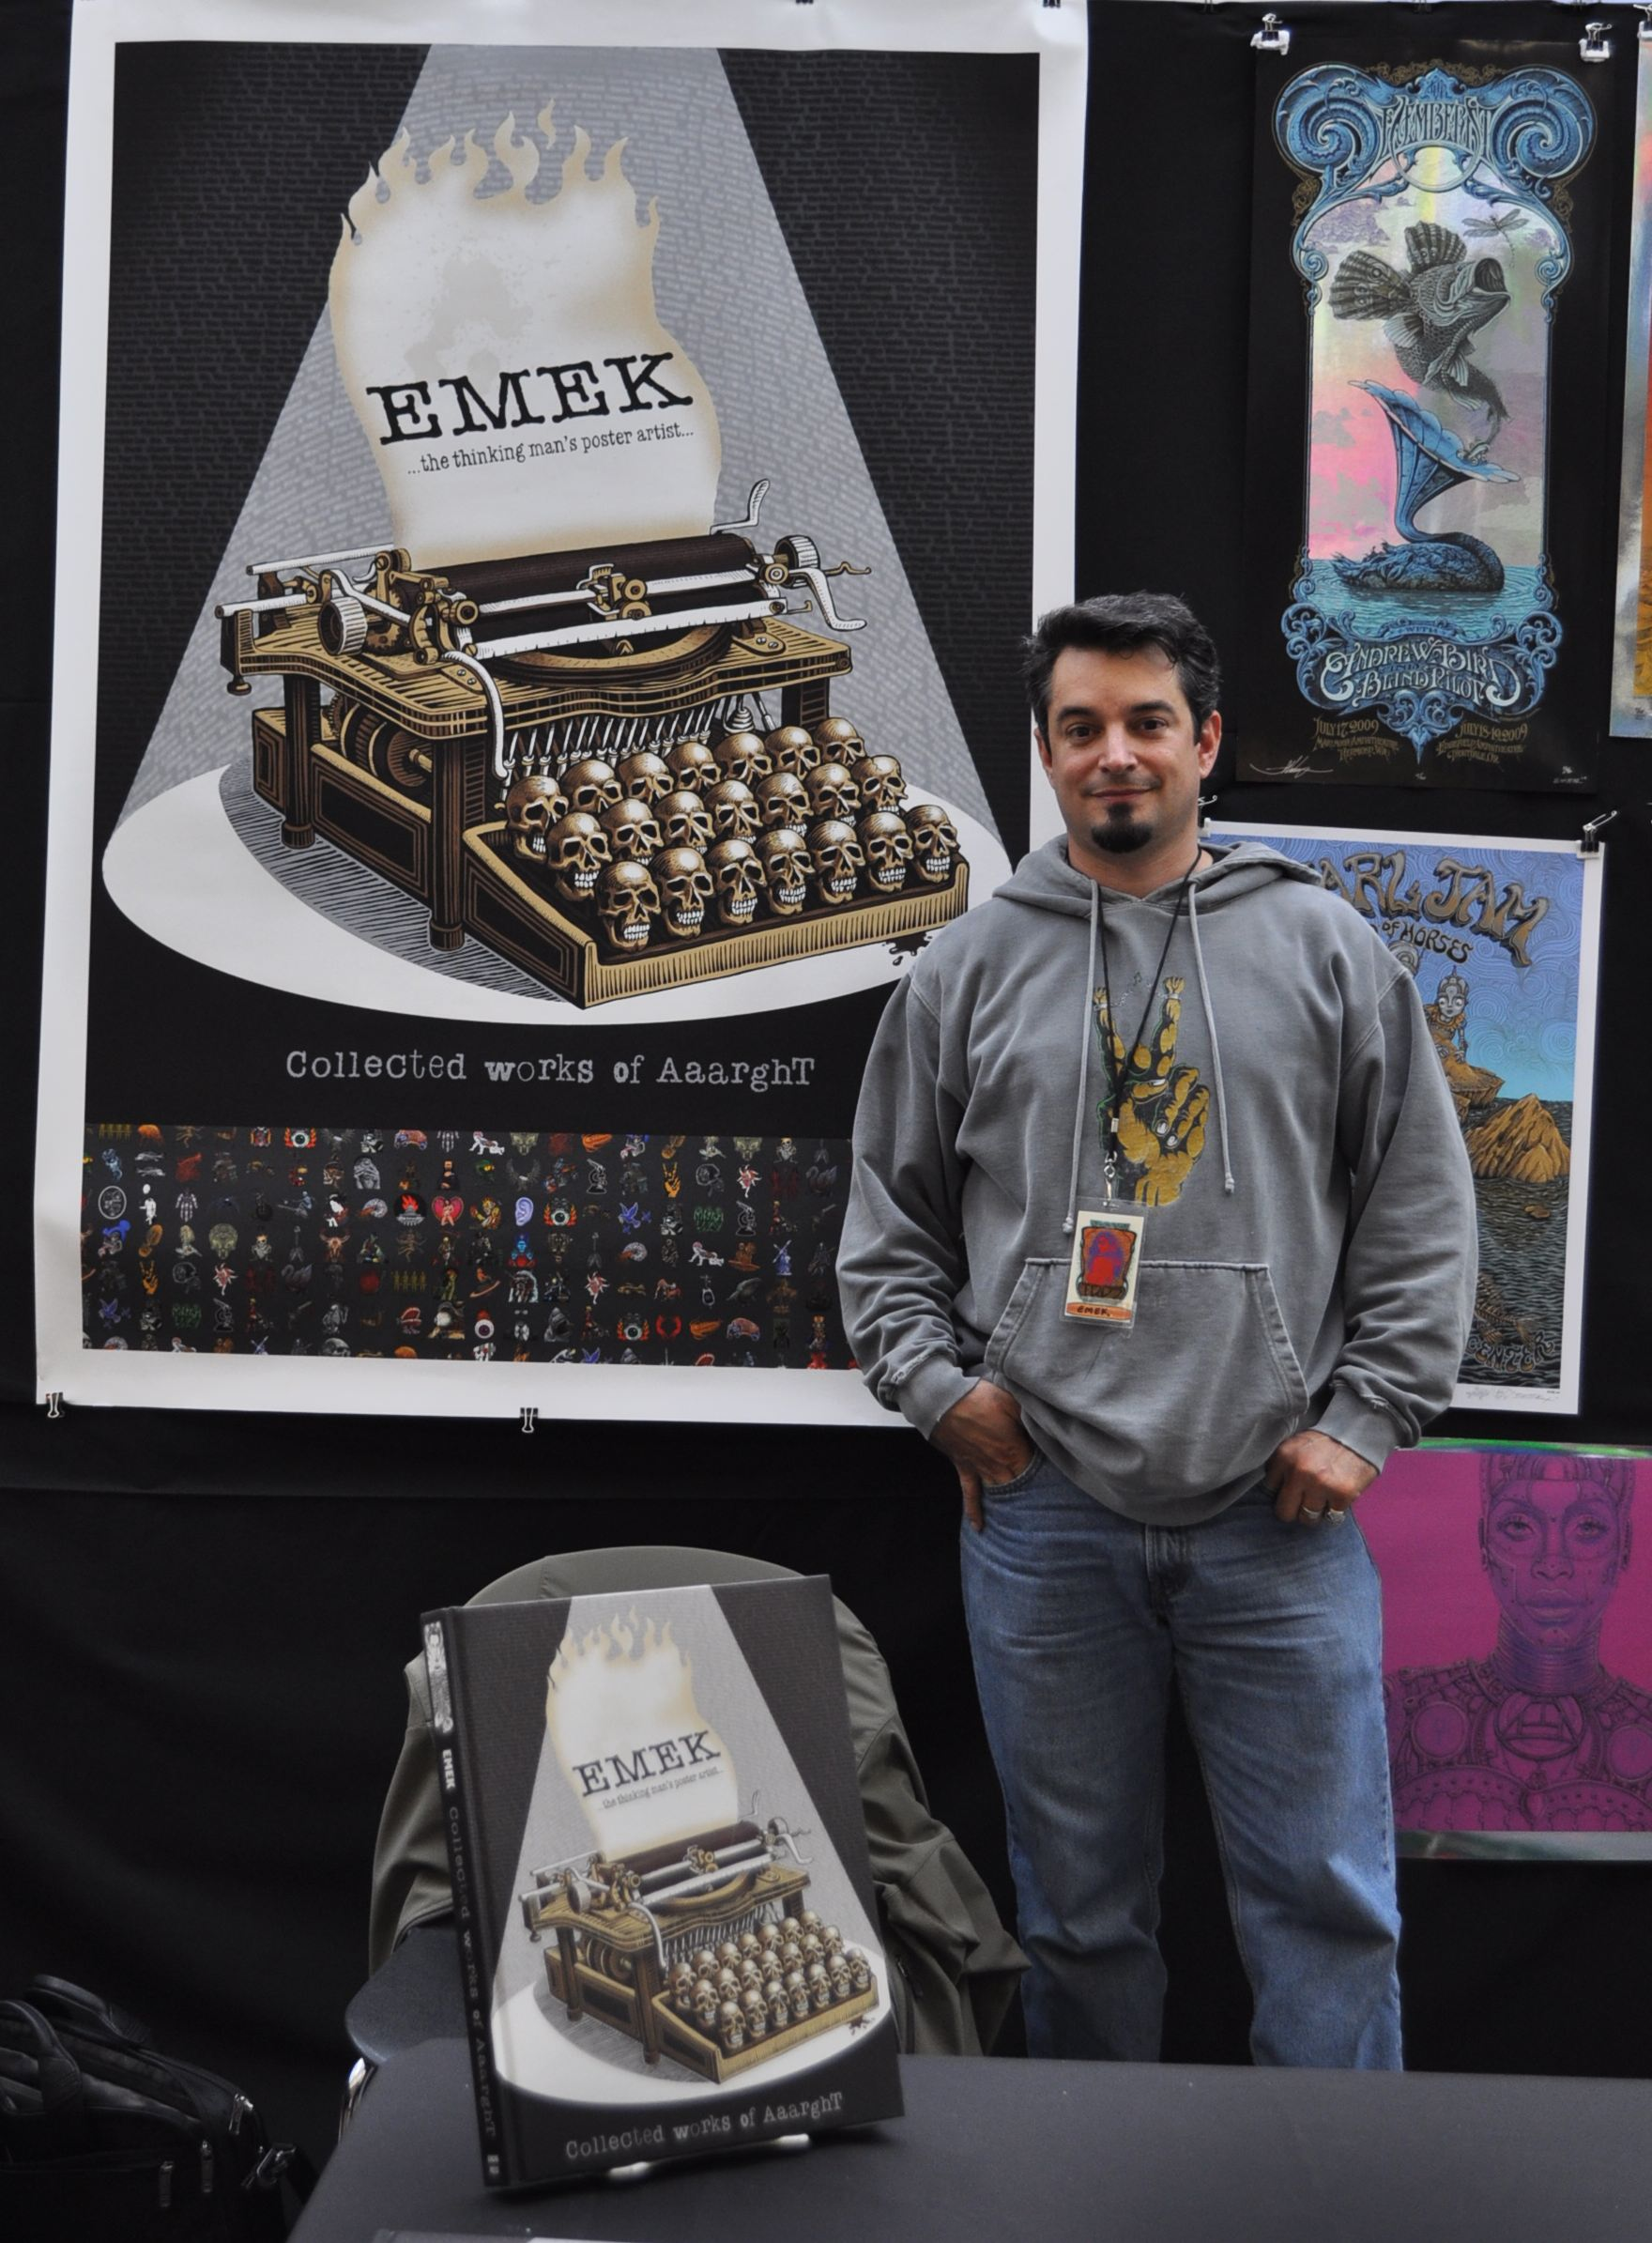 By the end of the show, even the poster advertising Emek's new book had sold.